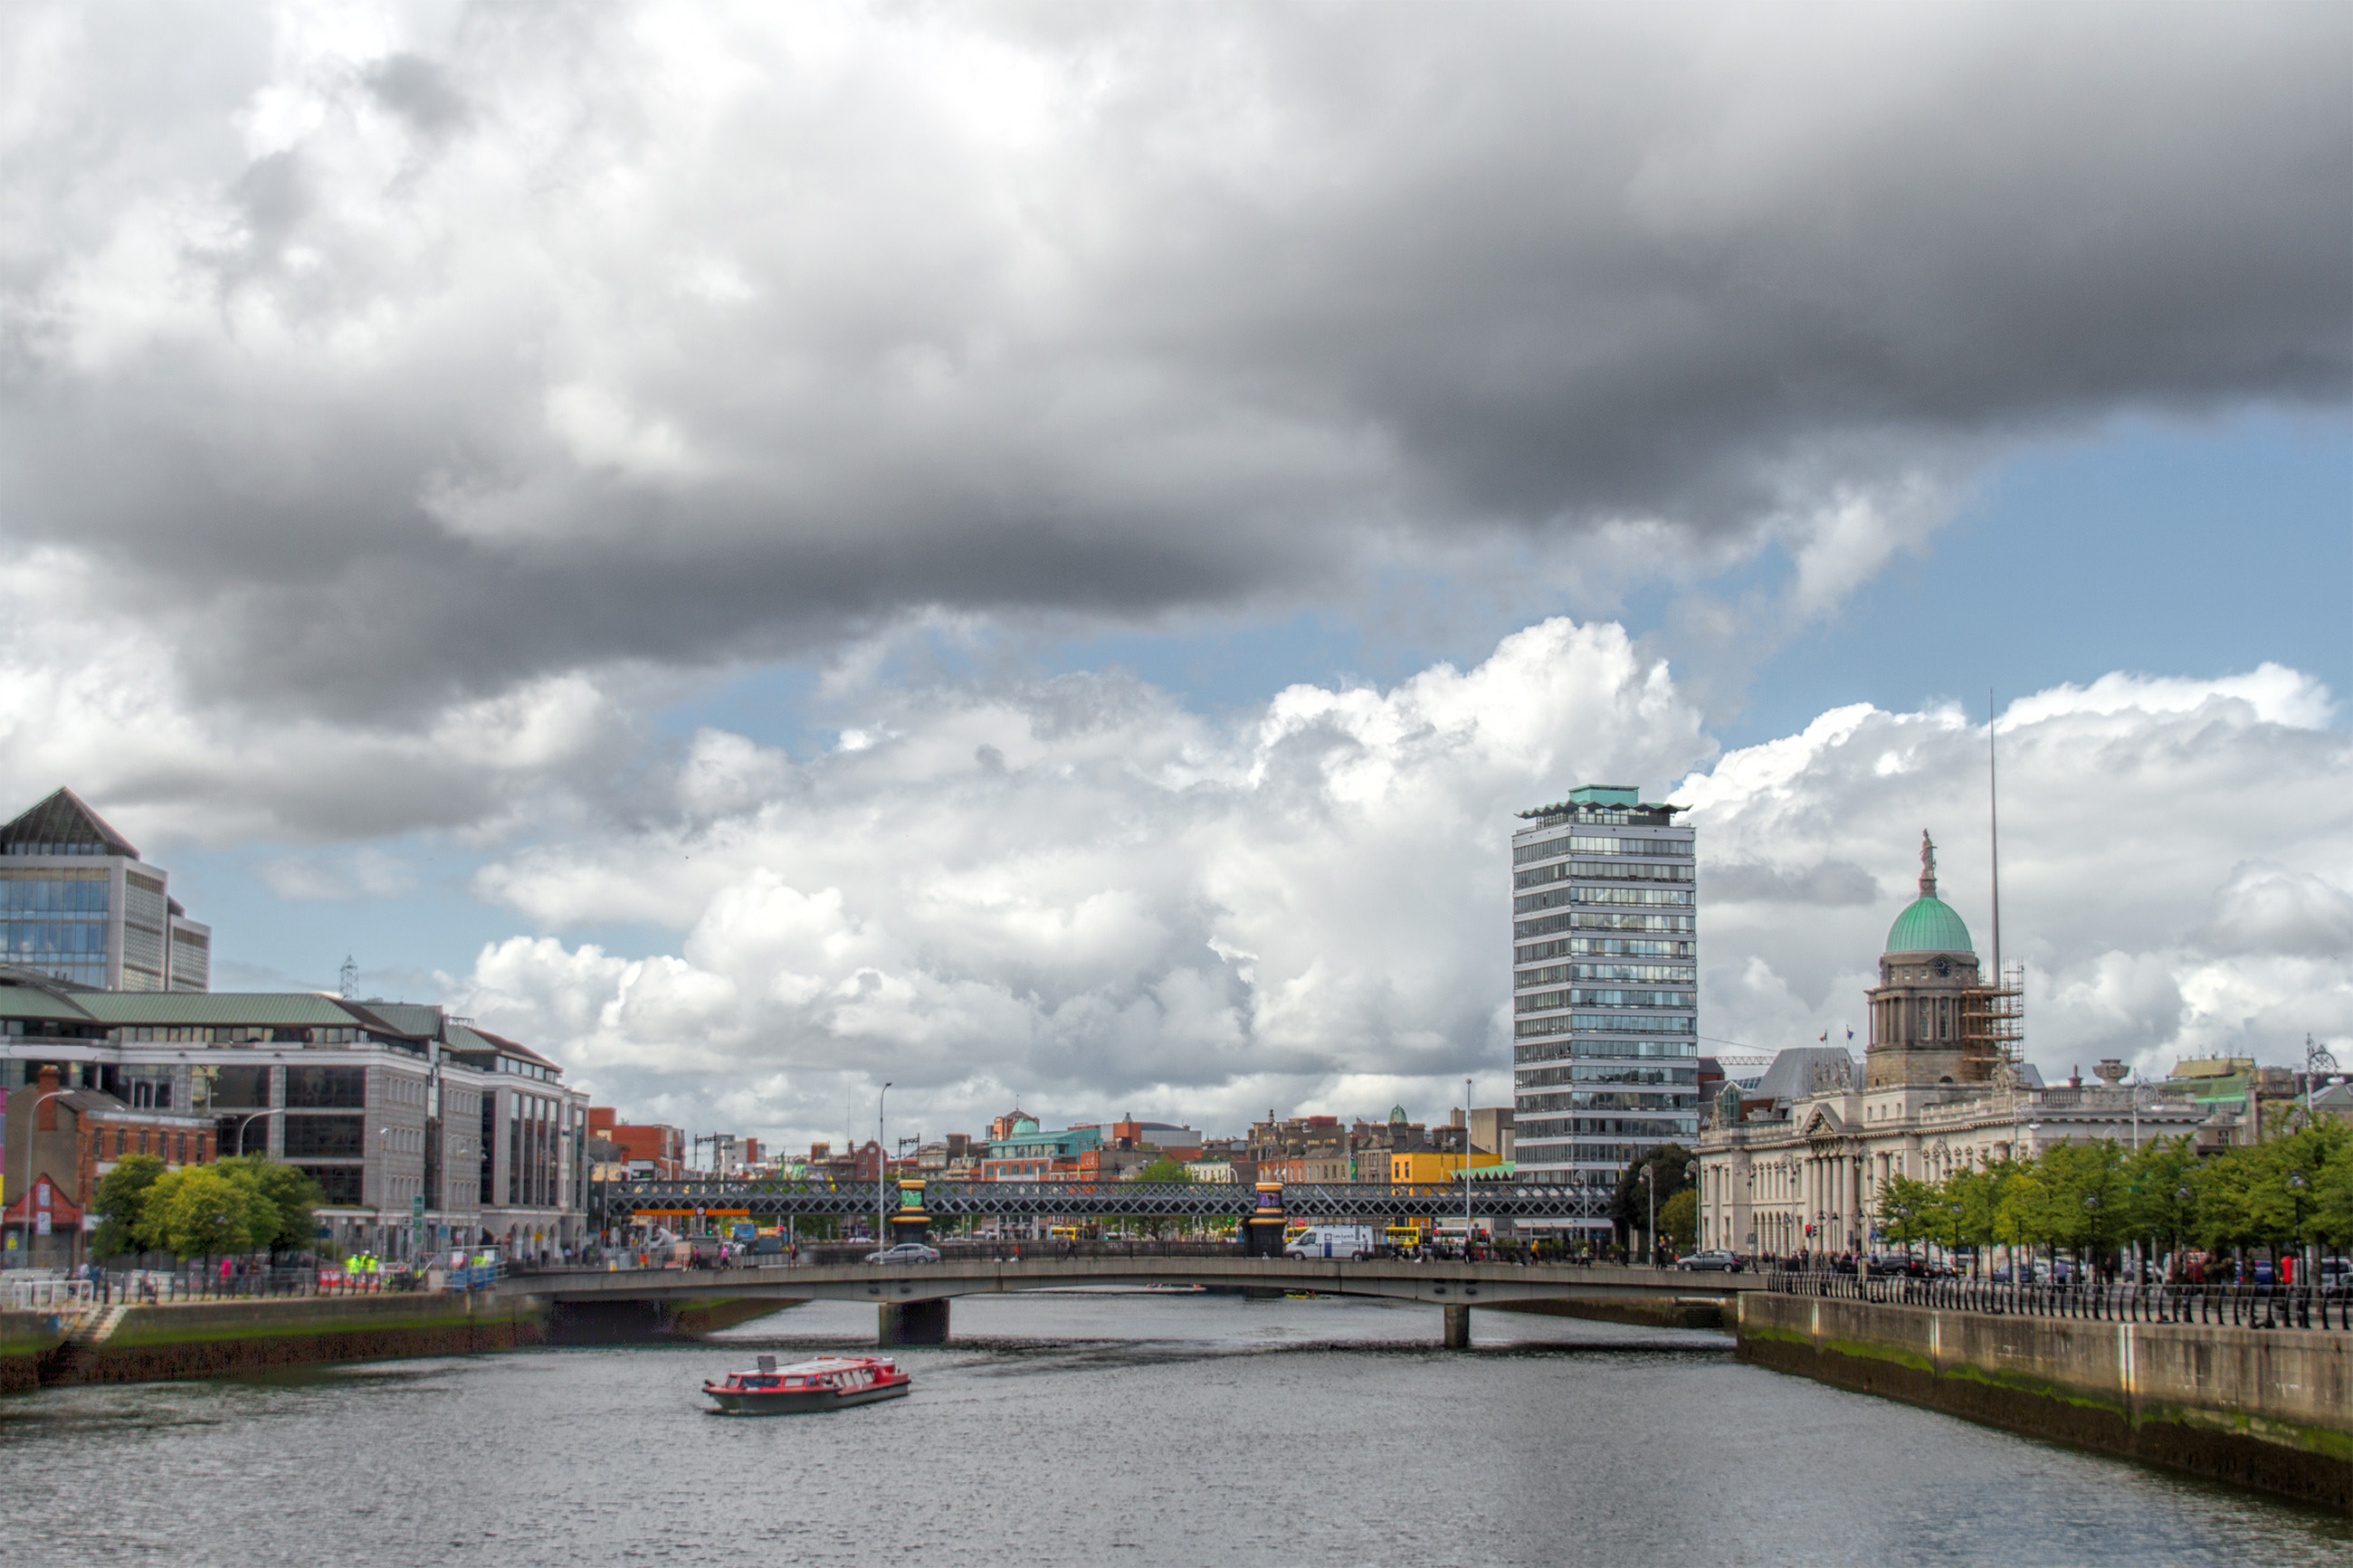 River liffey in dublin photo